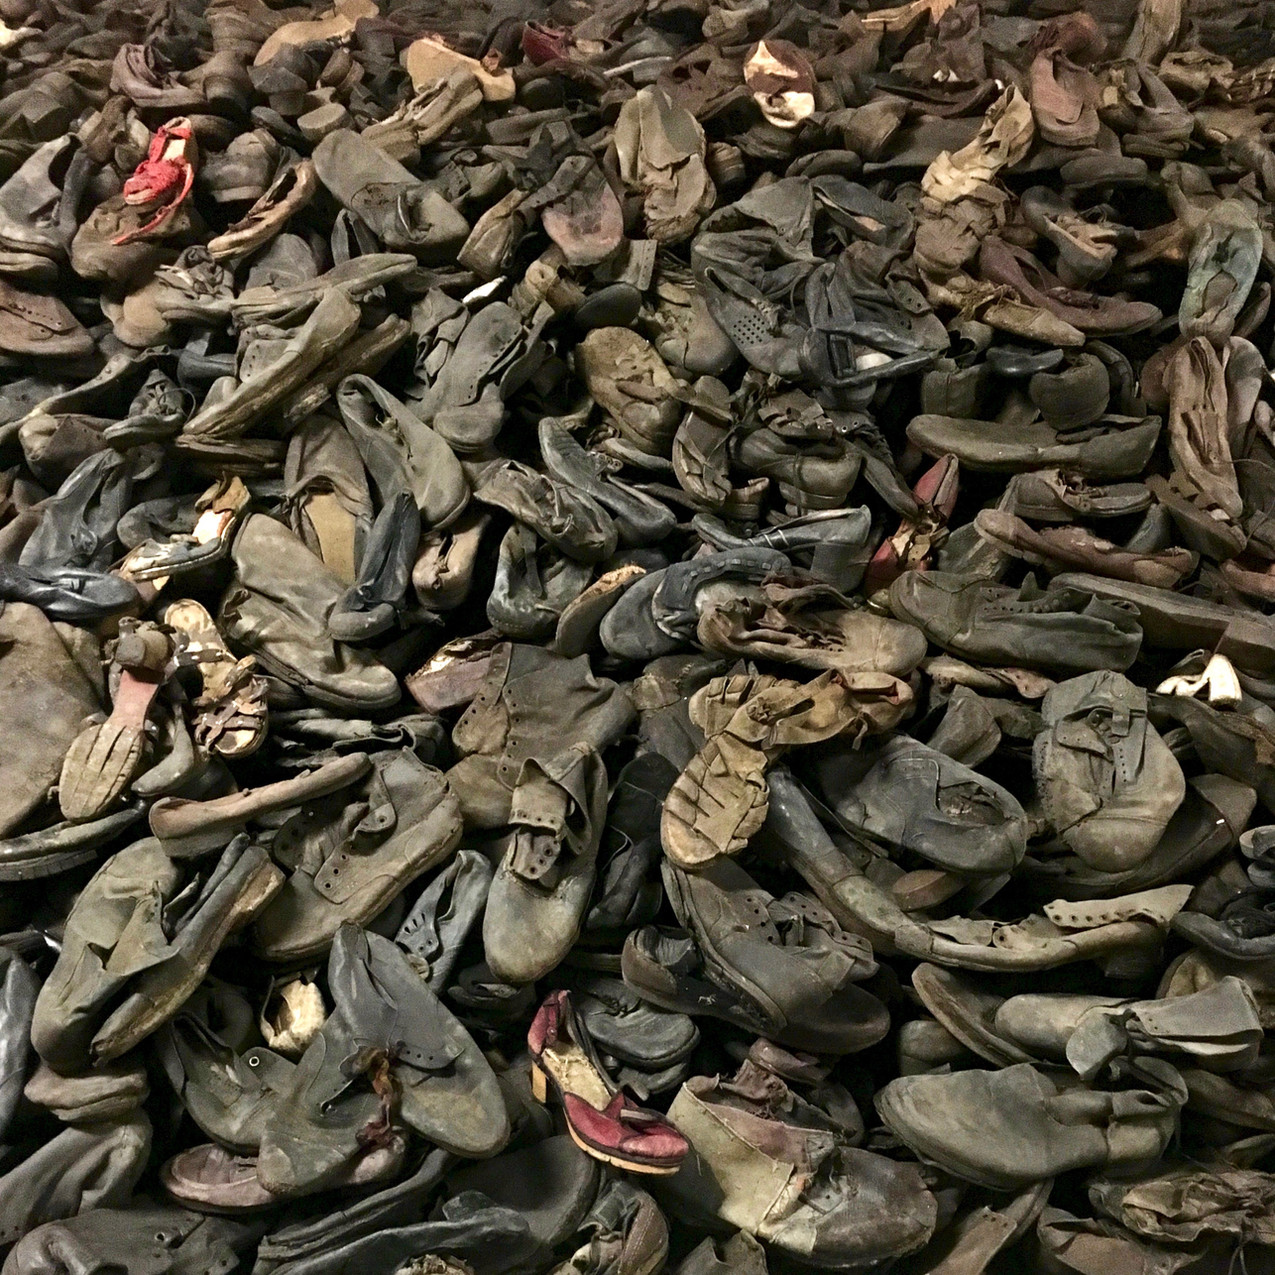 A pile of worn out shoes once worn by the victims of Auschwitz